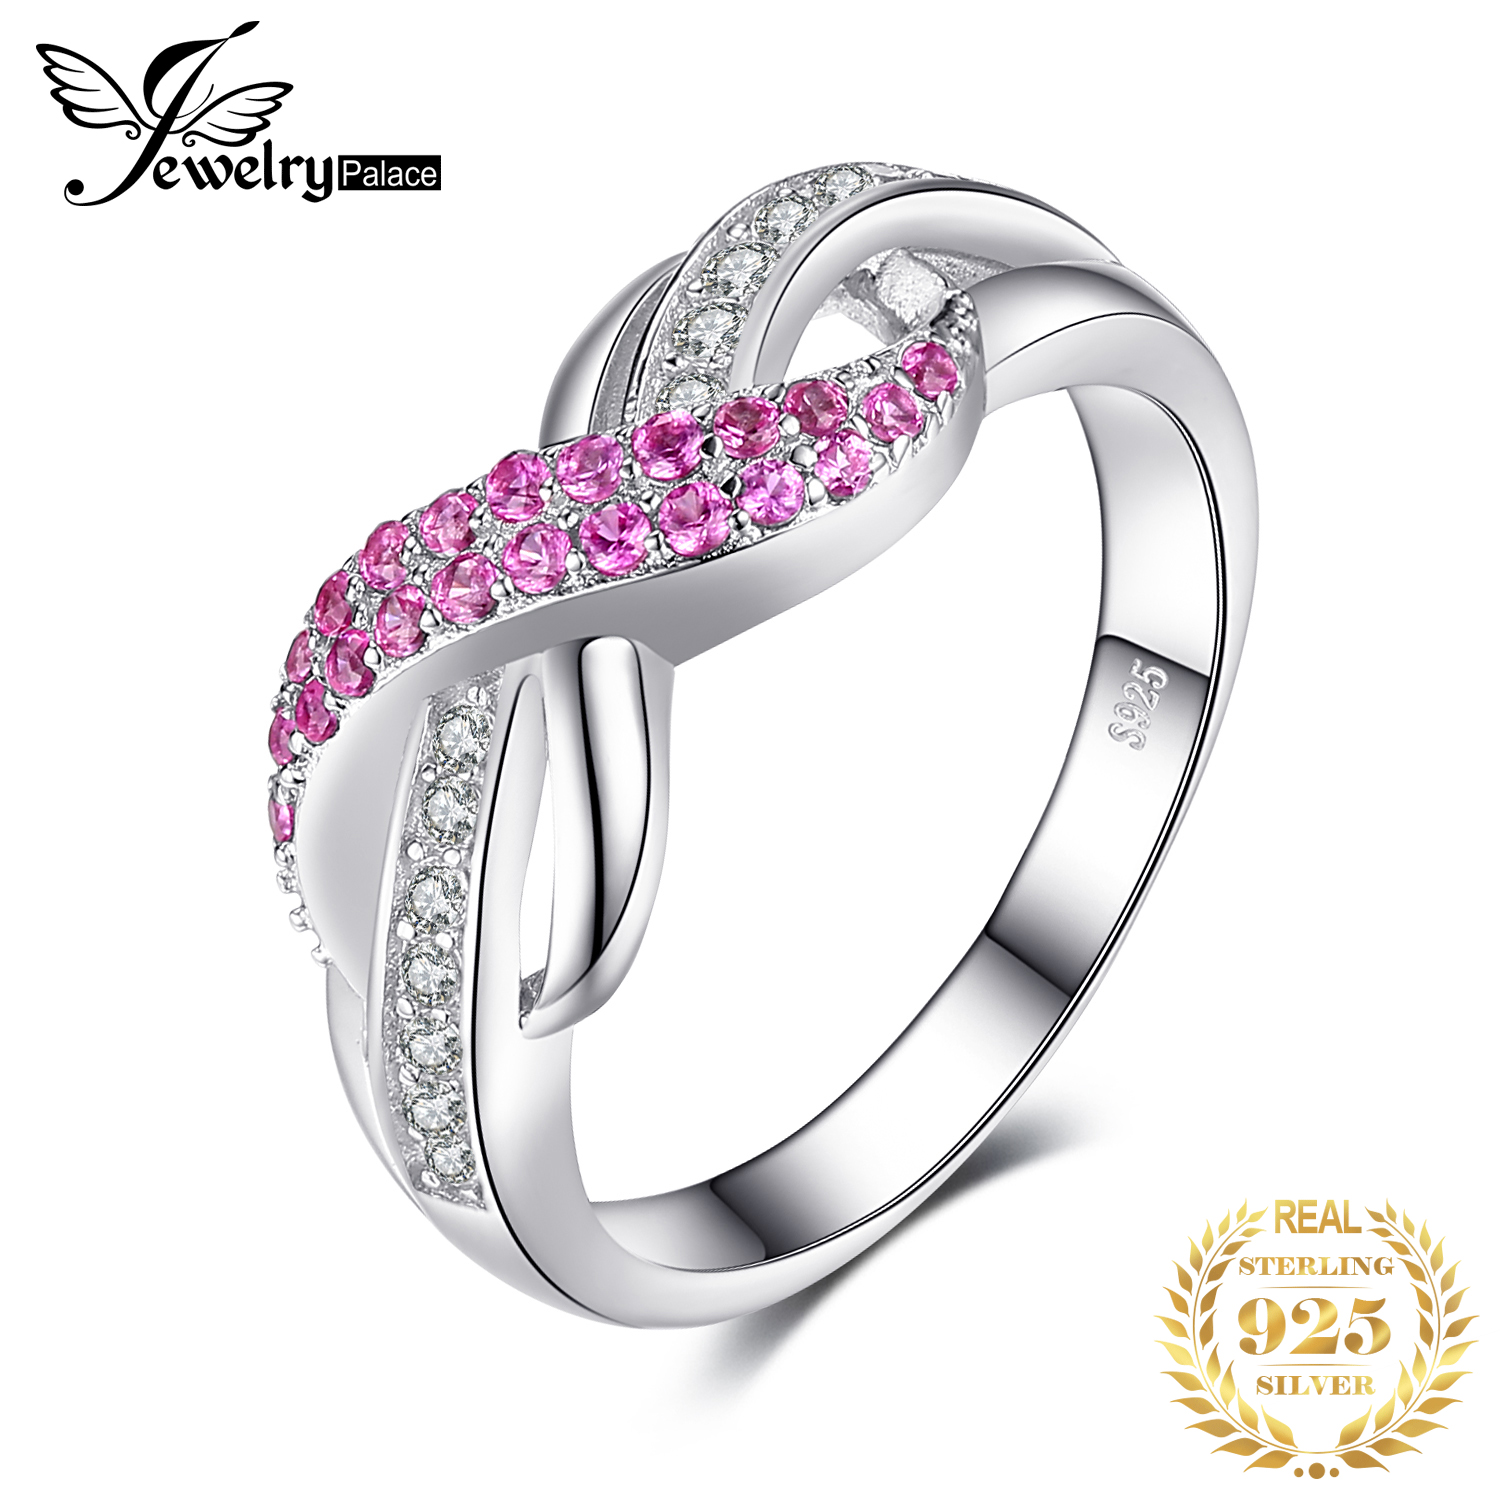 JewelryPalace Infinity Created Pink Sapphire Ring 925 Sterling 